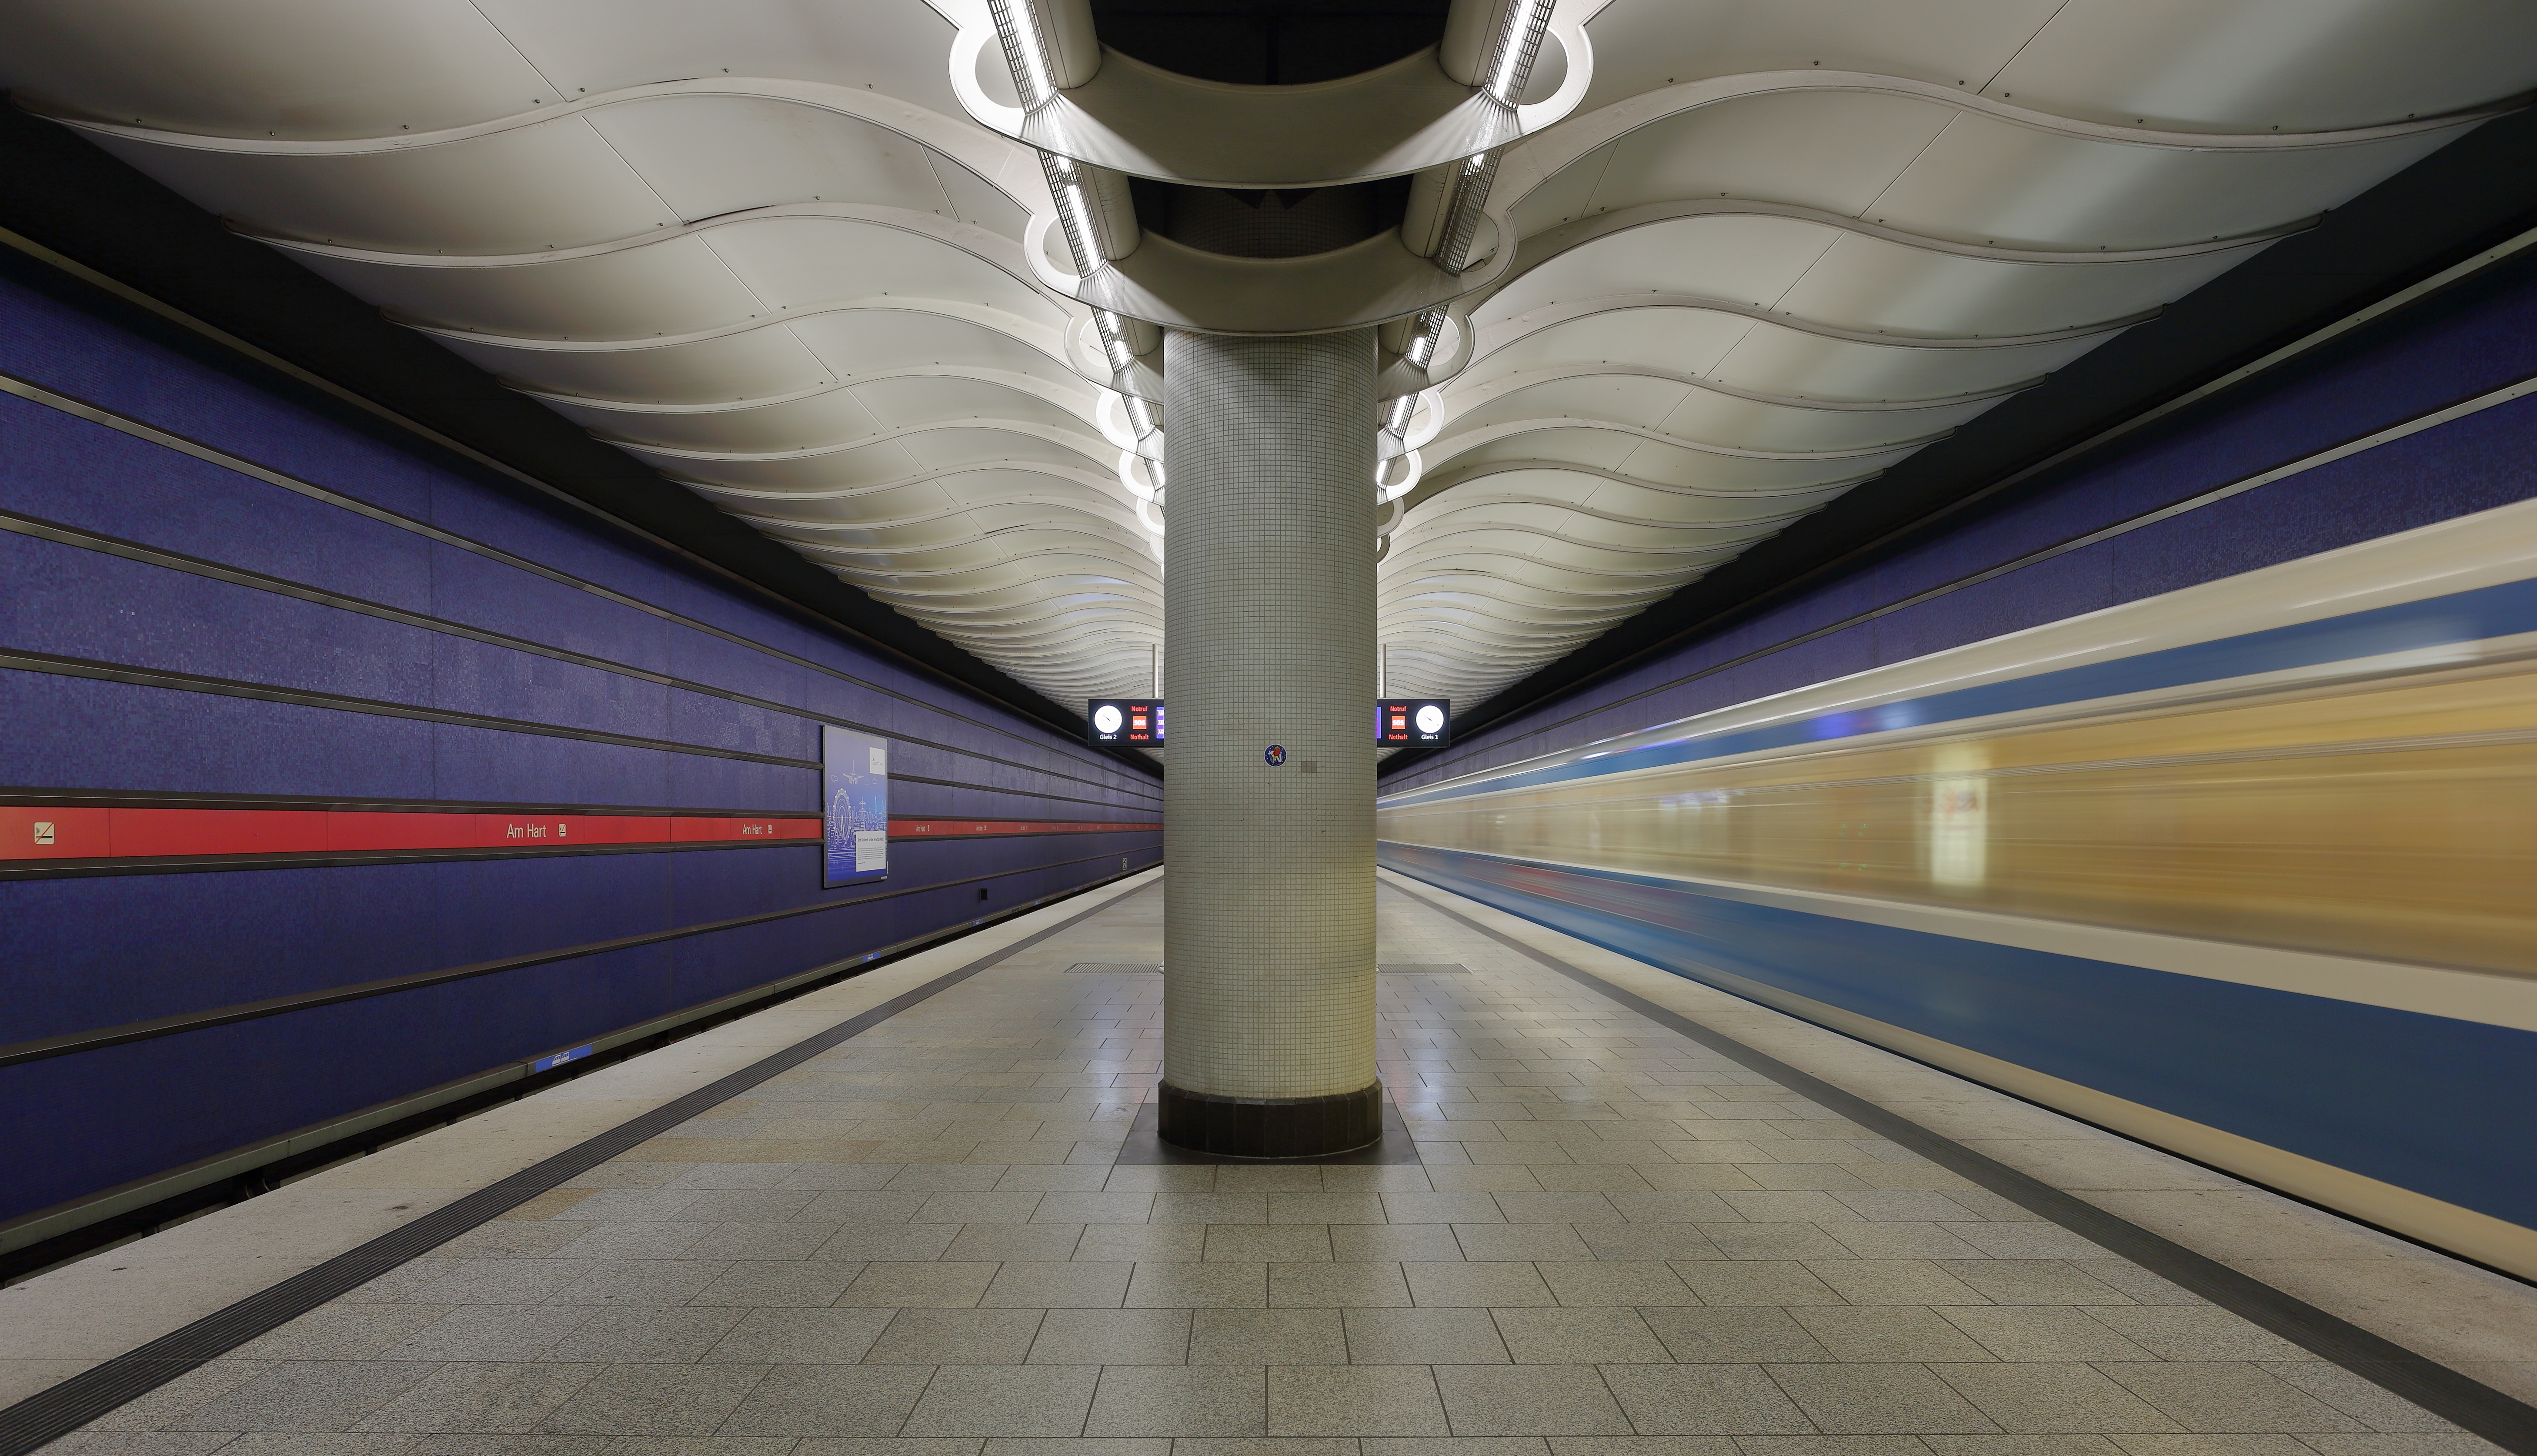 File:Munich subway station Am Hart.JPG